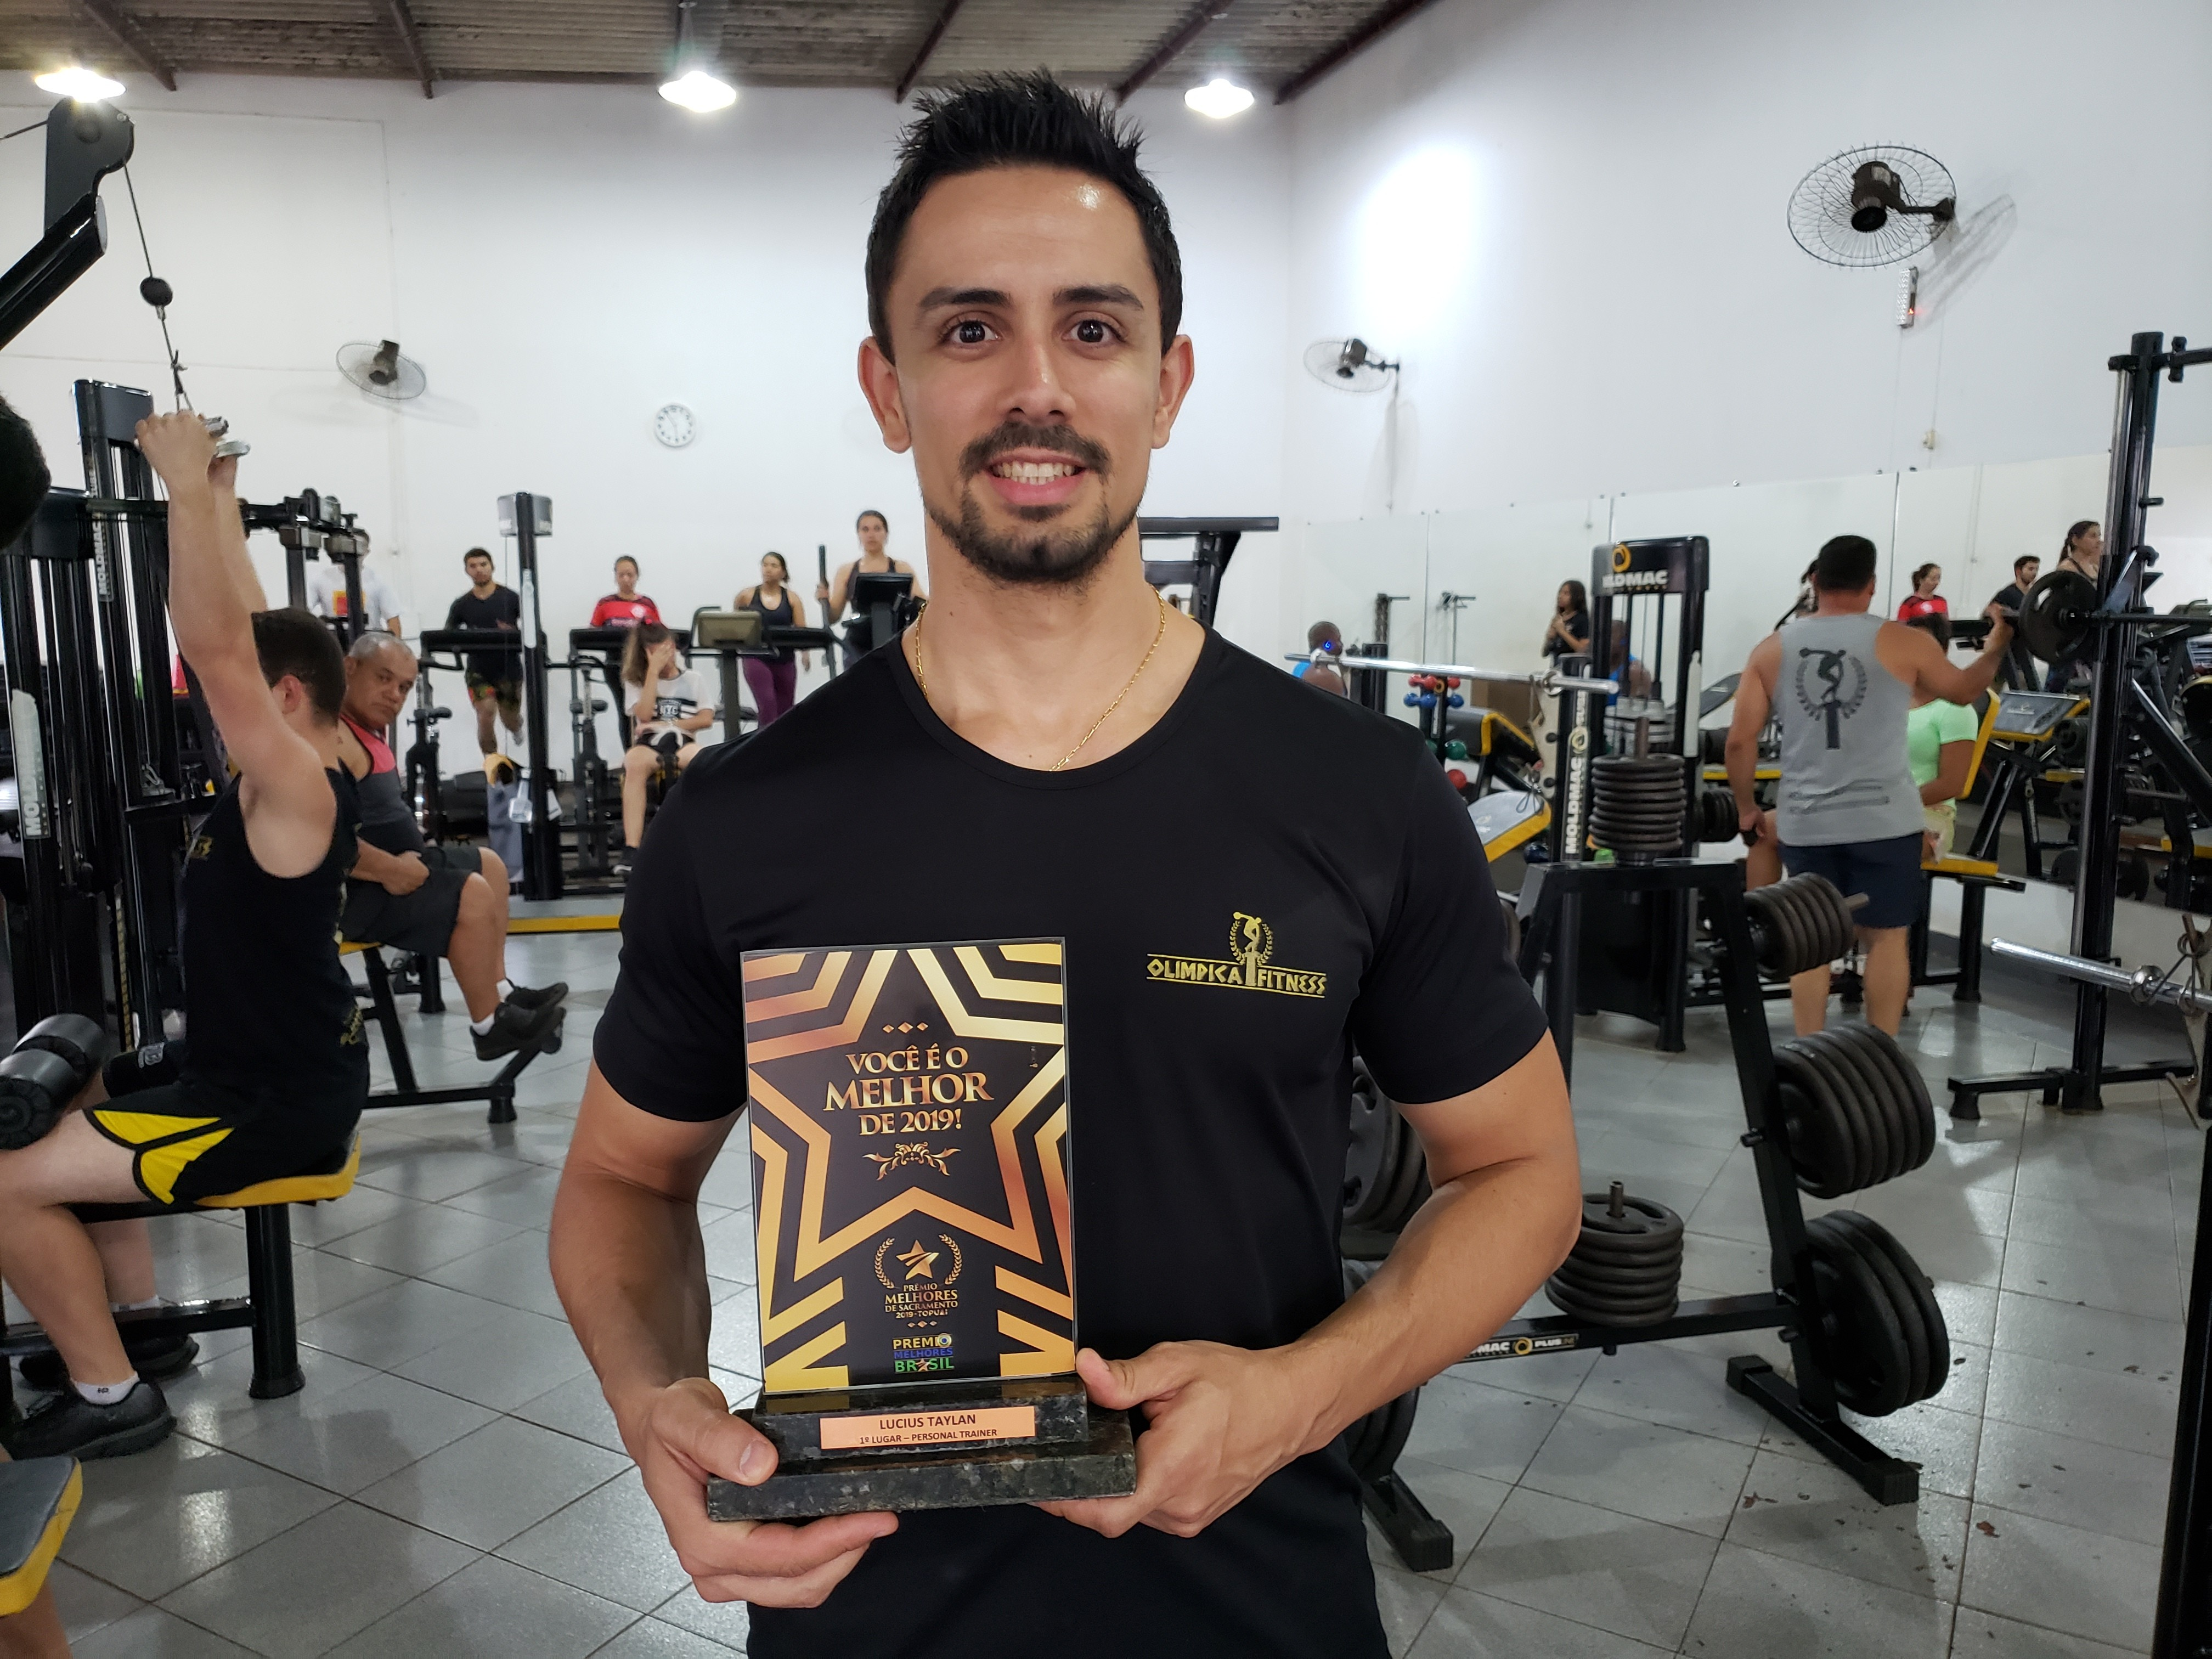 1° Lugar - Personal Trainer